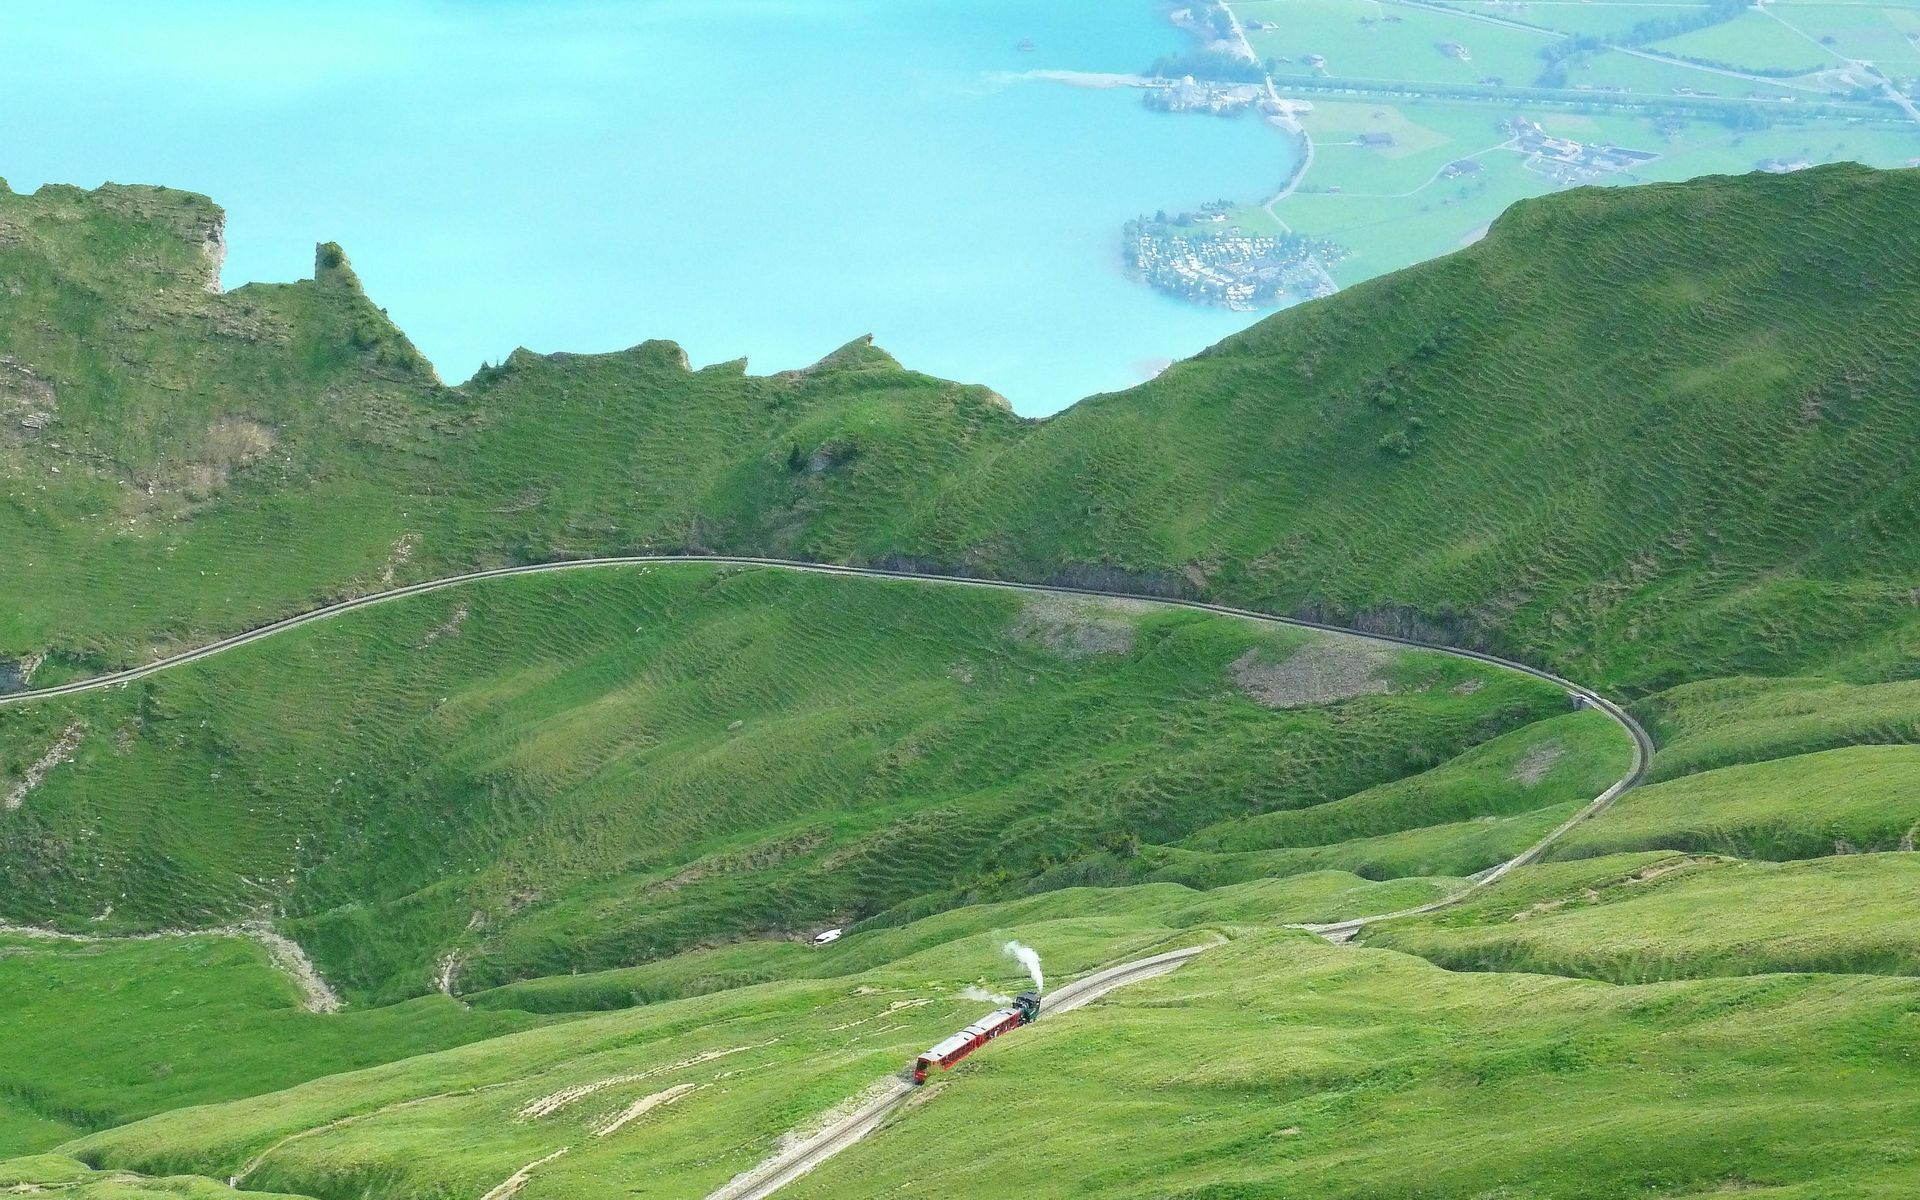 train-on-the-wavy-road-hd-wallpaper